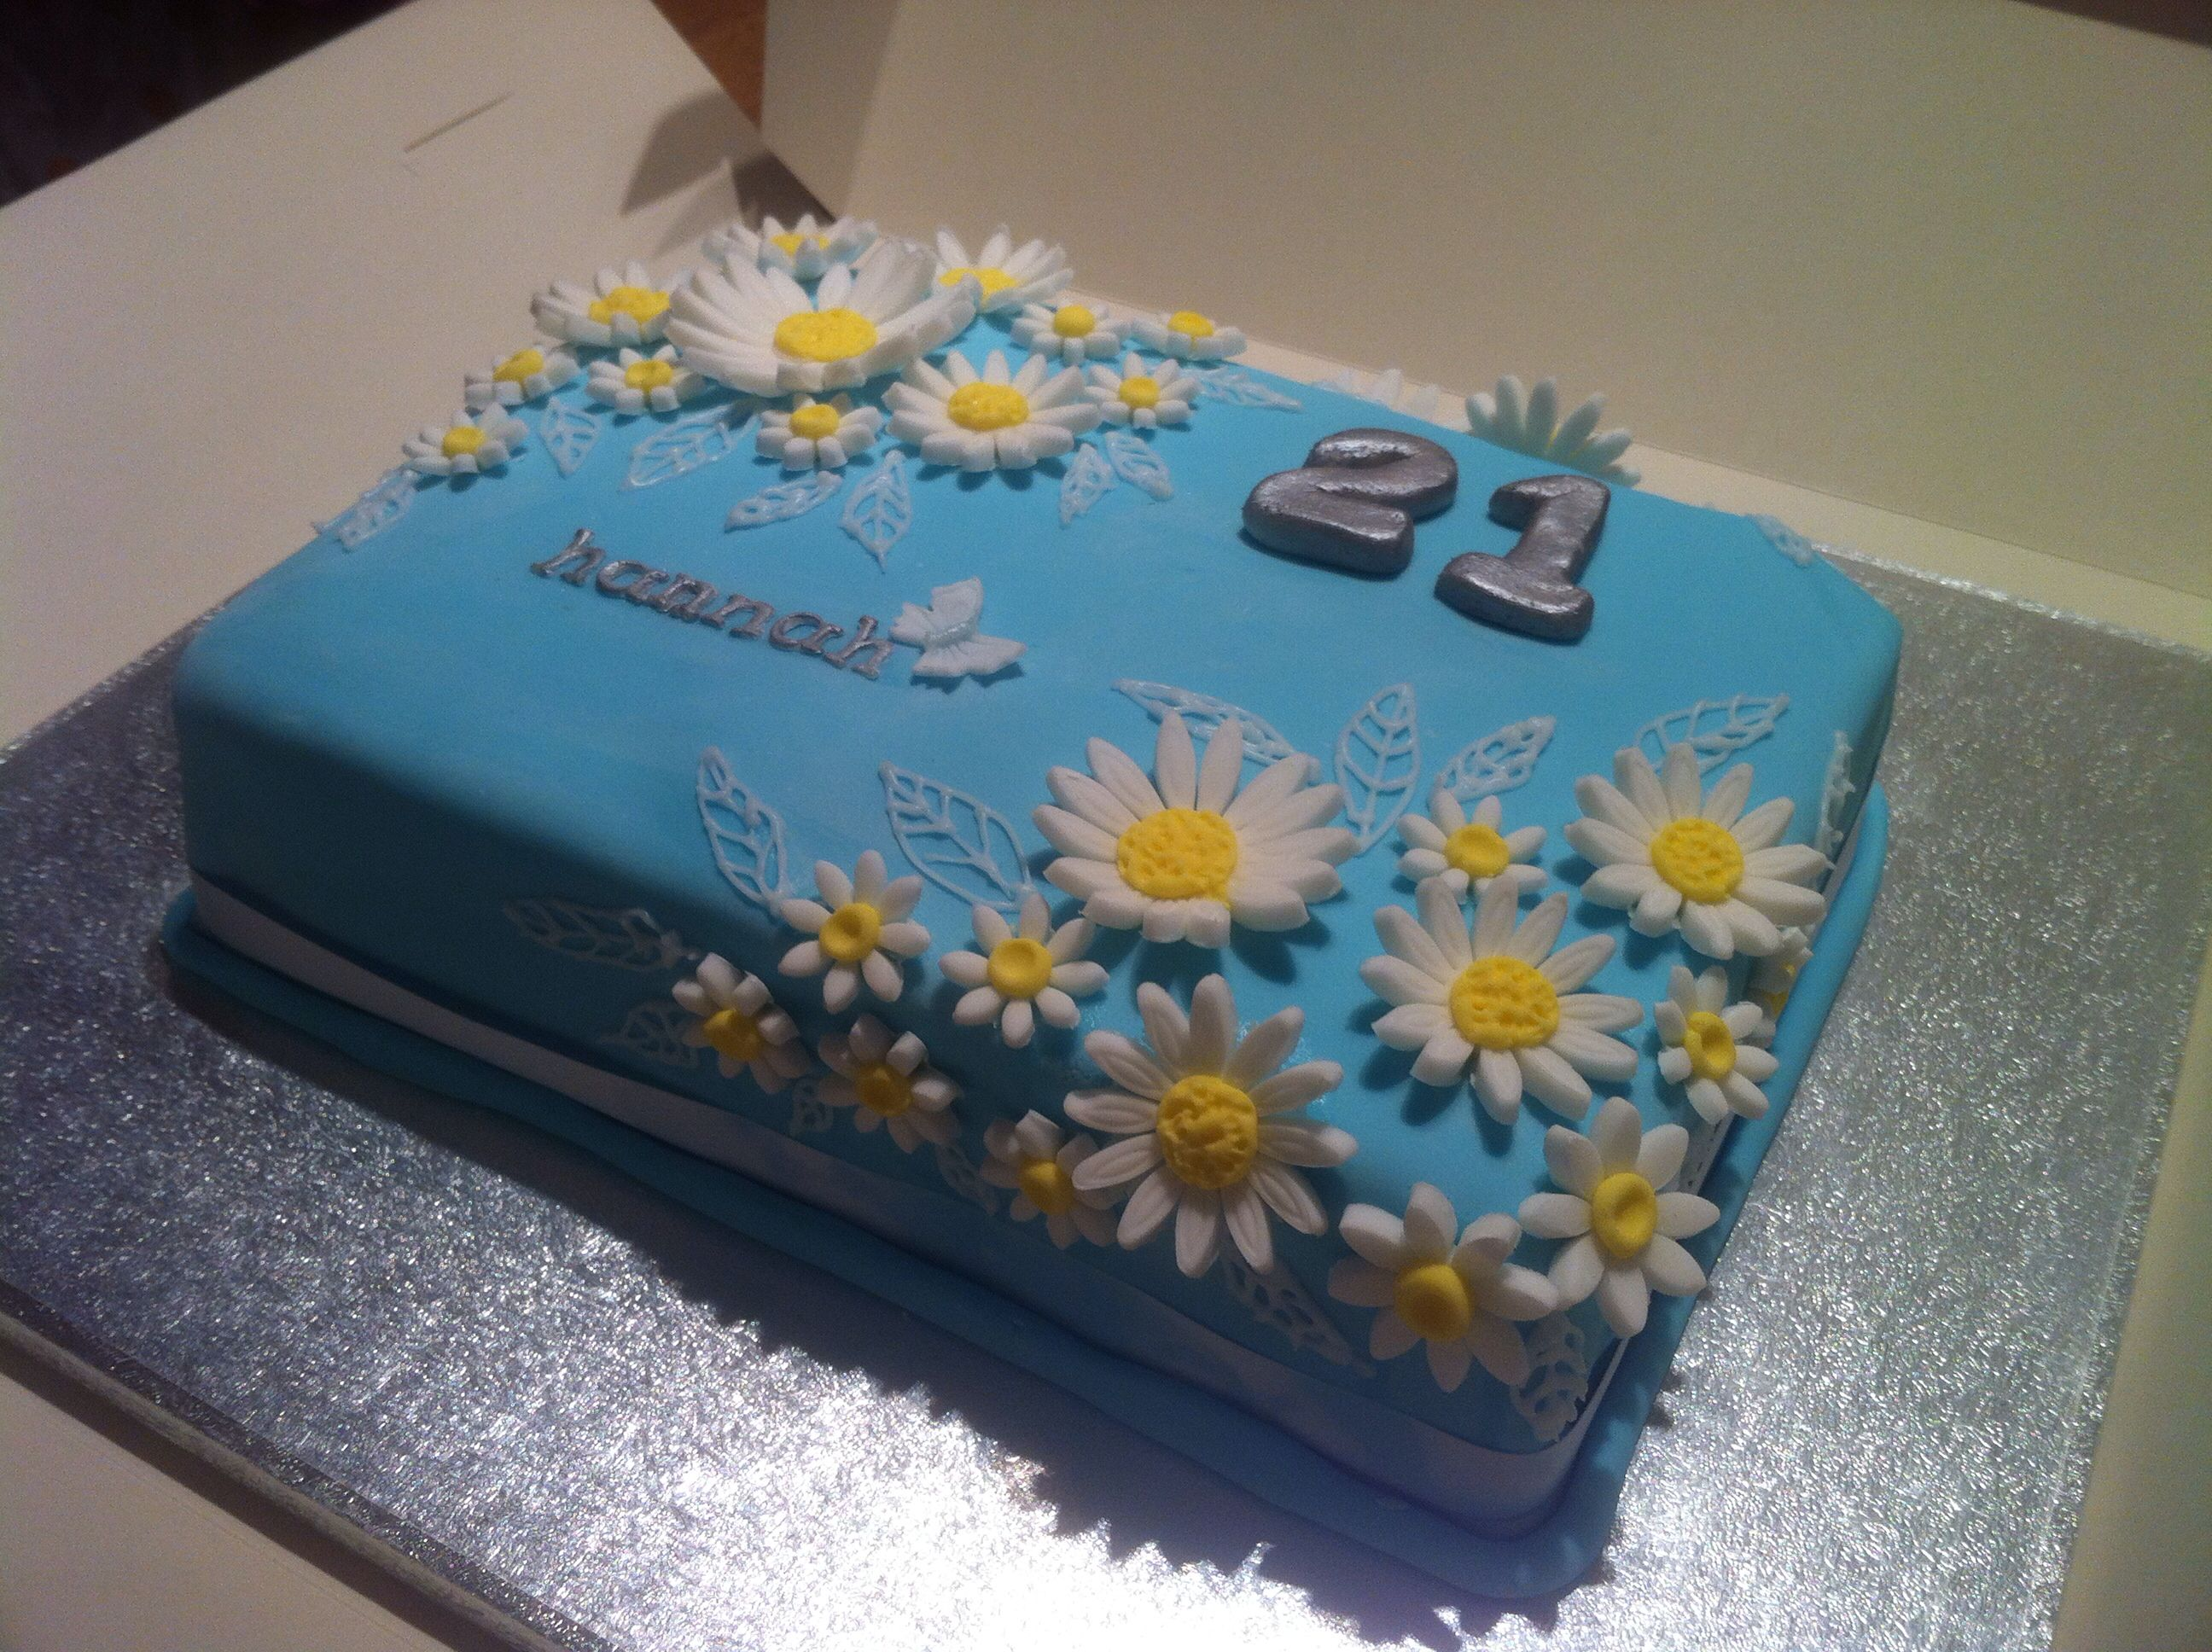 21st birthday cake Tiffany blue colour with white daisies